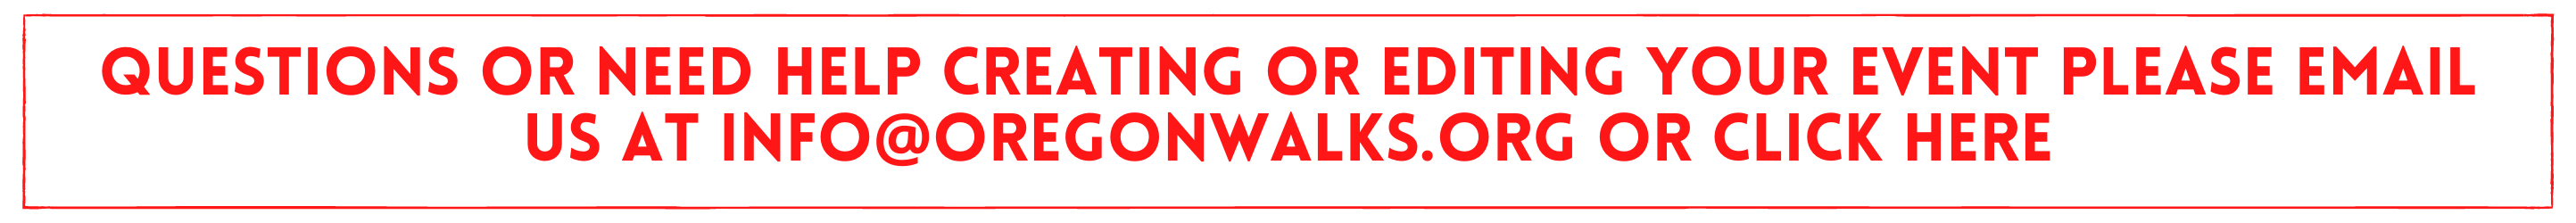 QUESTIONS or need help creating or editing your event please email us at info@oregonwalks.org or click here